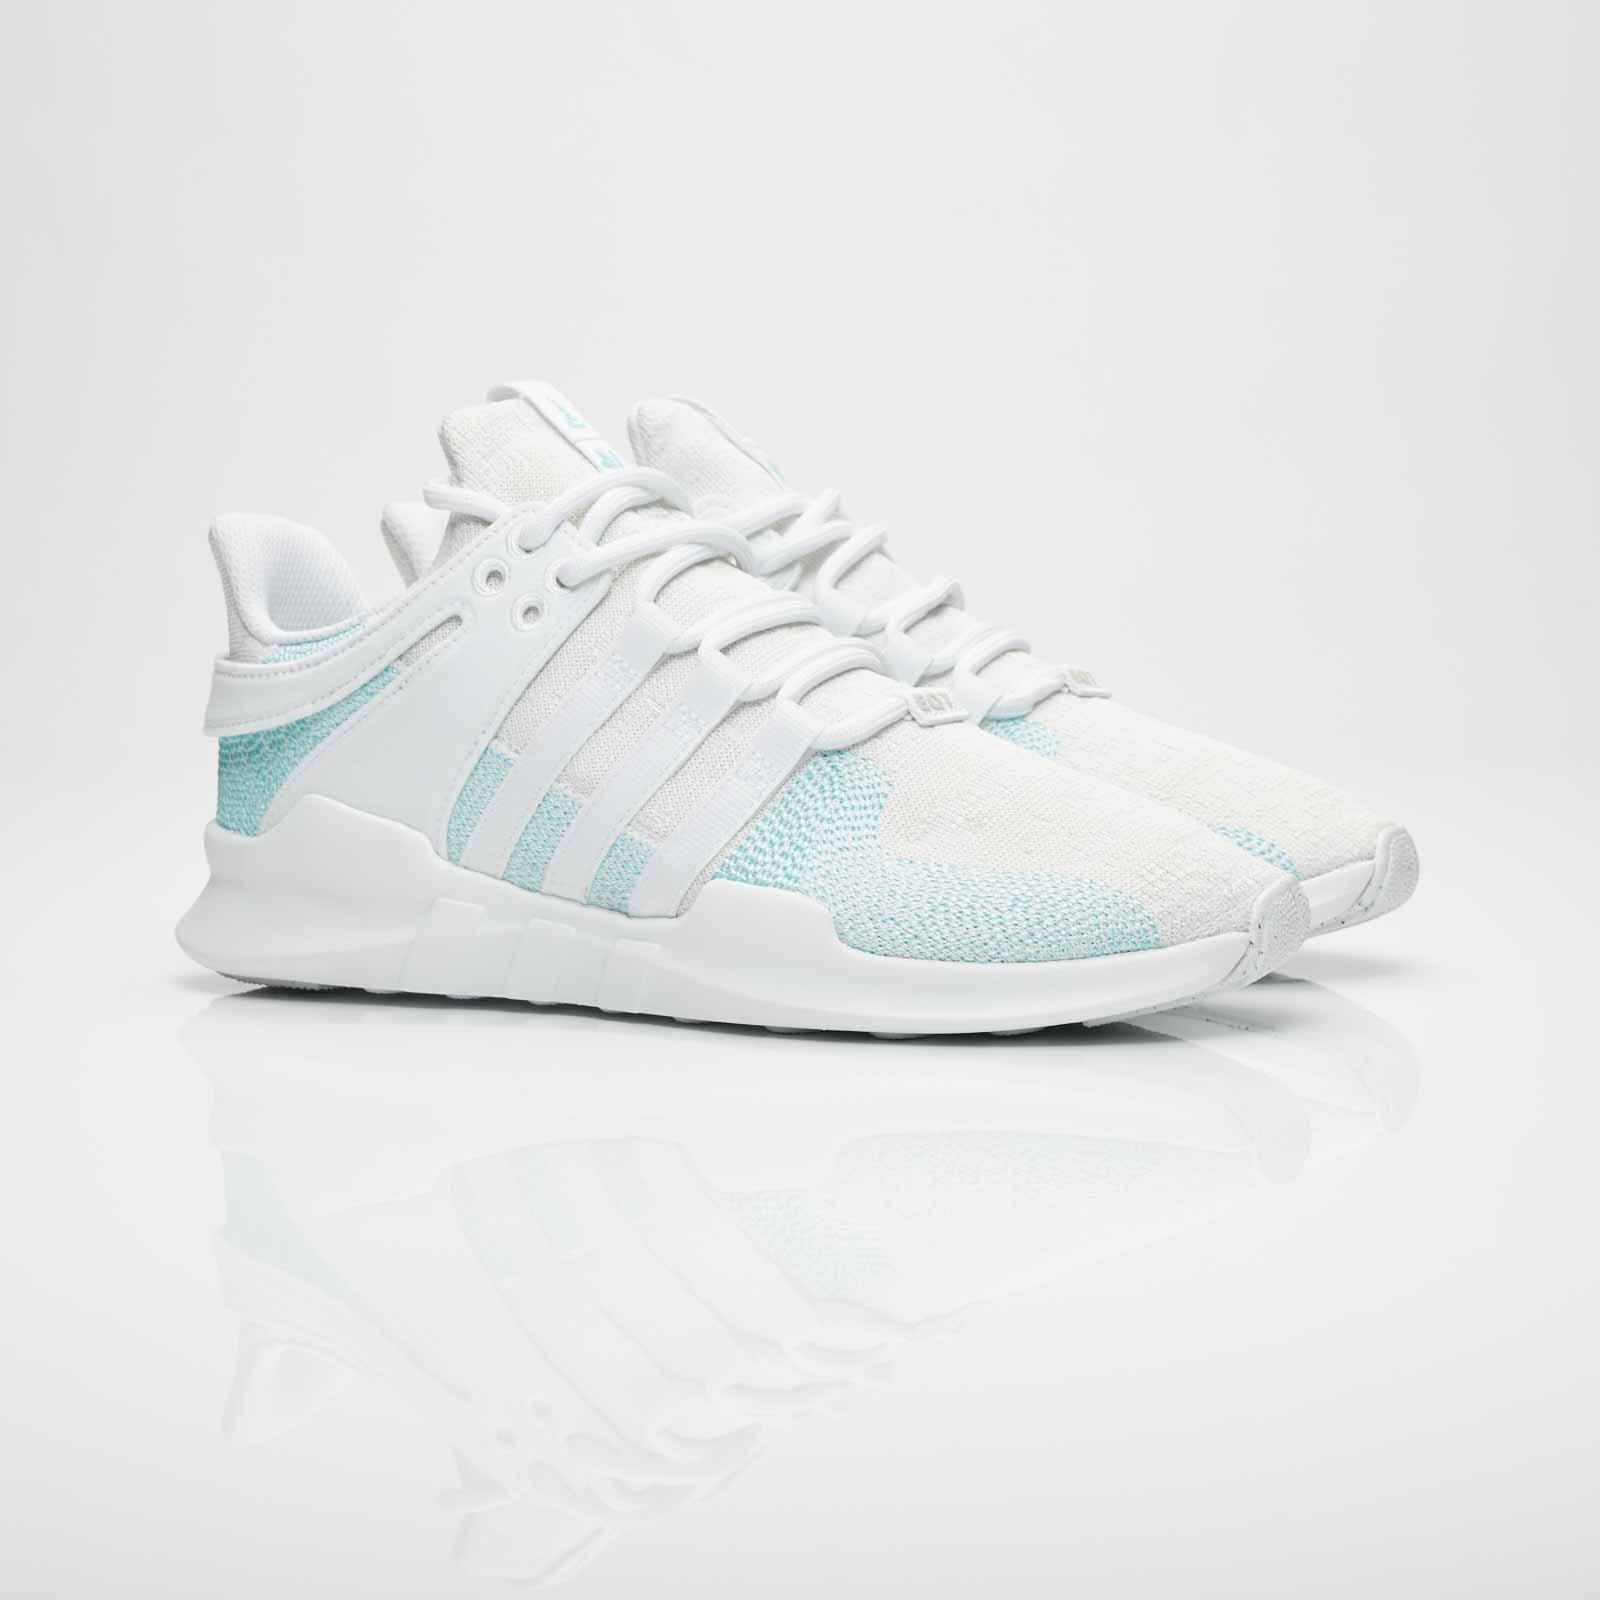 ee609260e1cb adidas EQT Support ADV CK Parley - Ac7804 - Sneakersnstuff ...